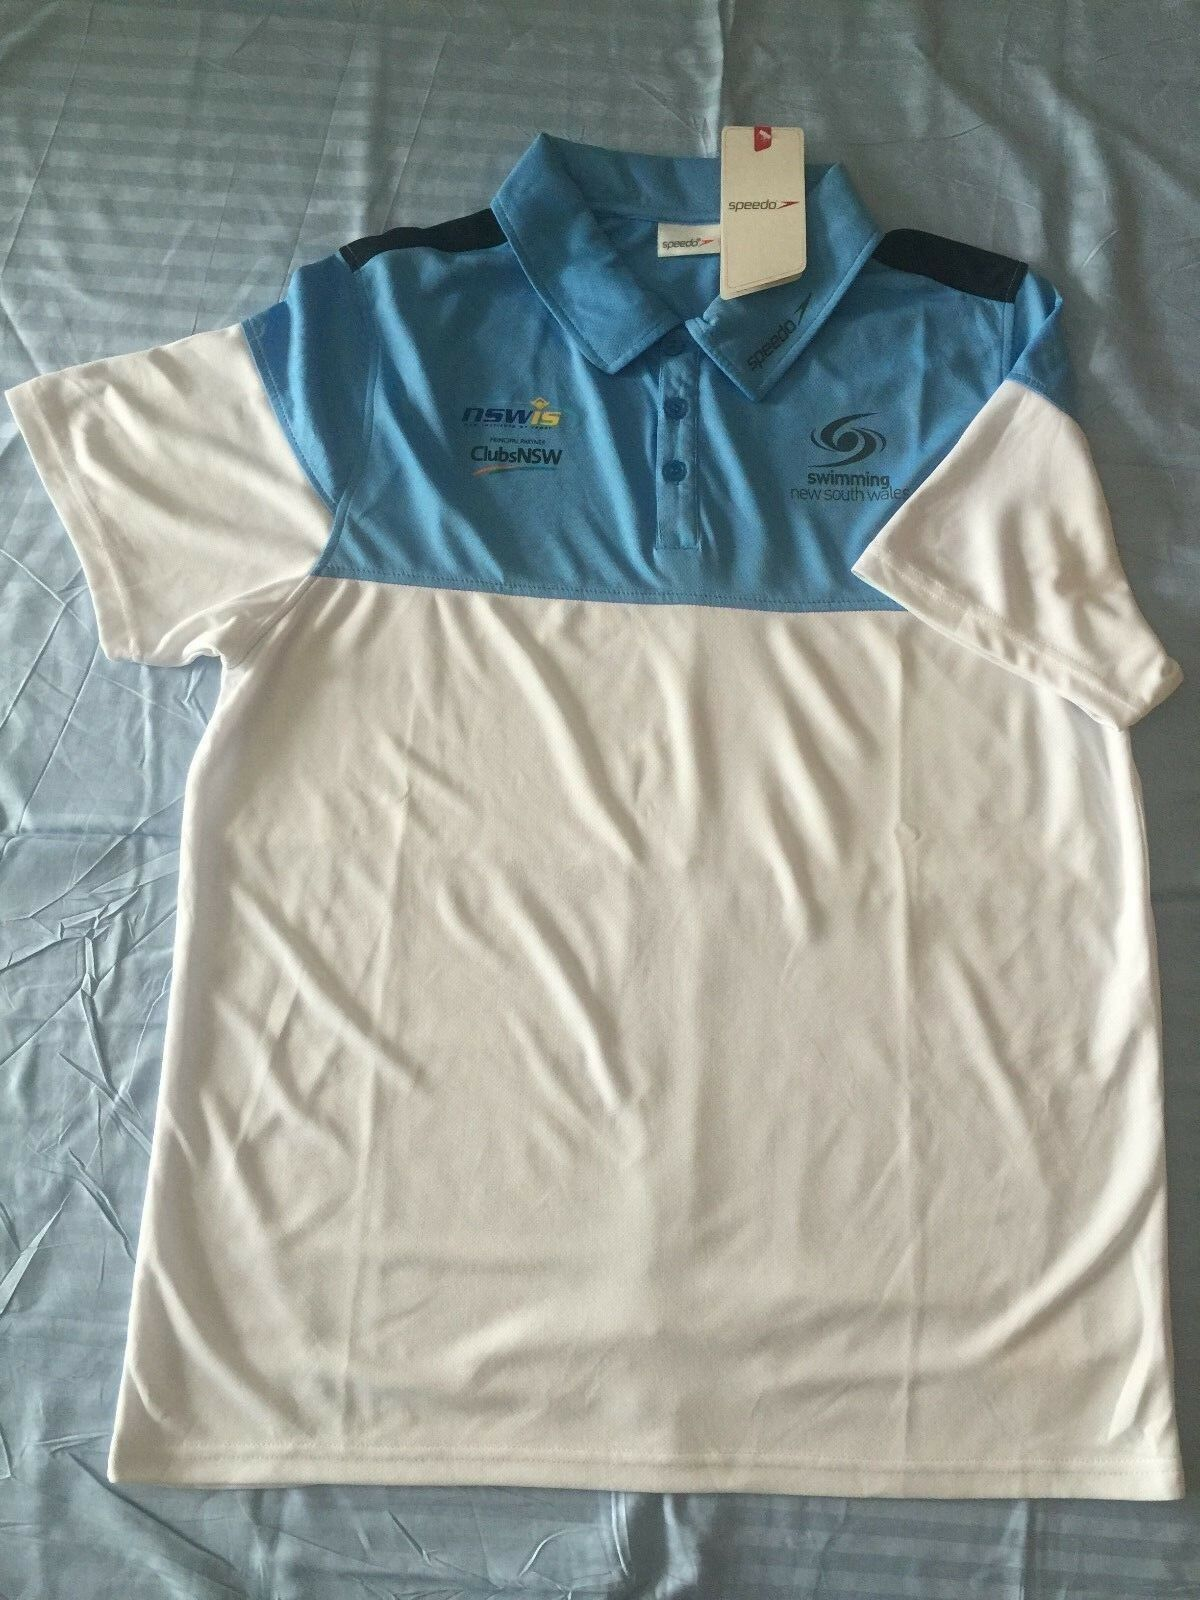 Genuine Australian Brand Swimming Team New South Wales NSW Club Polo T-Shirt